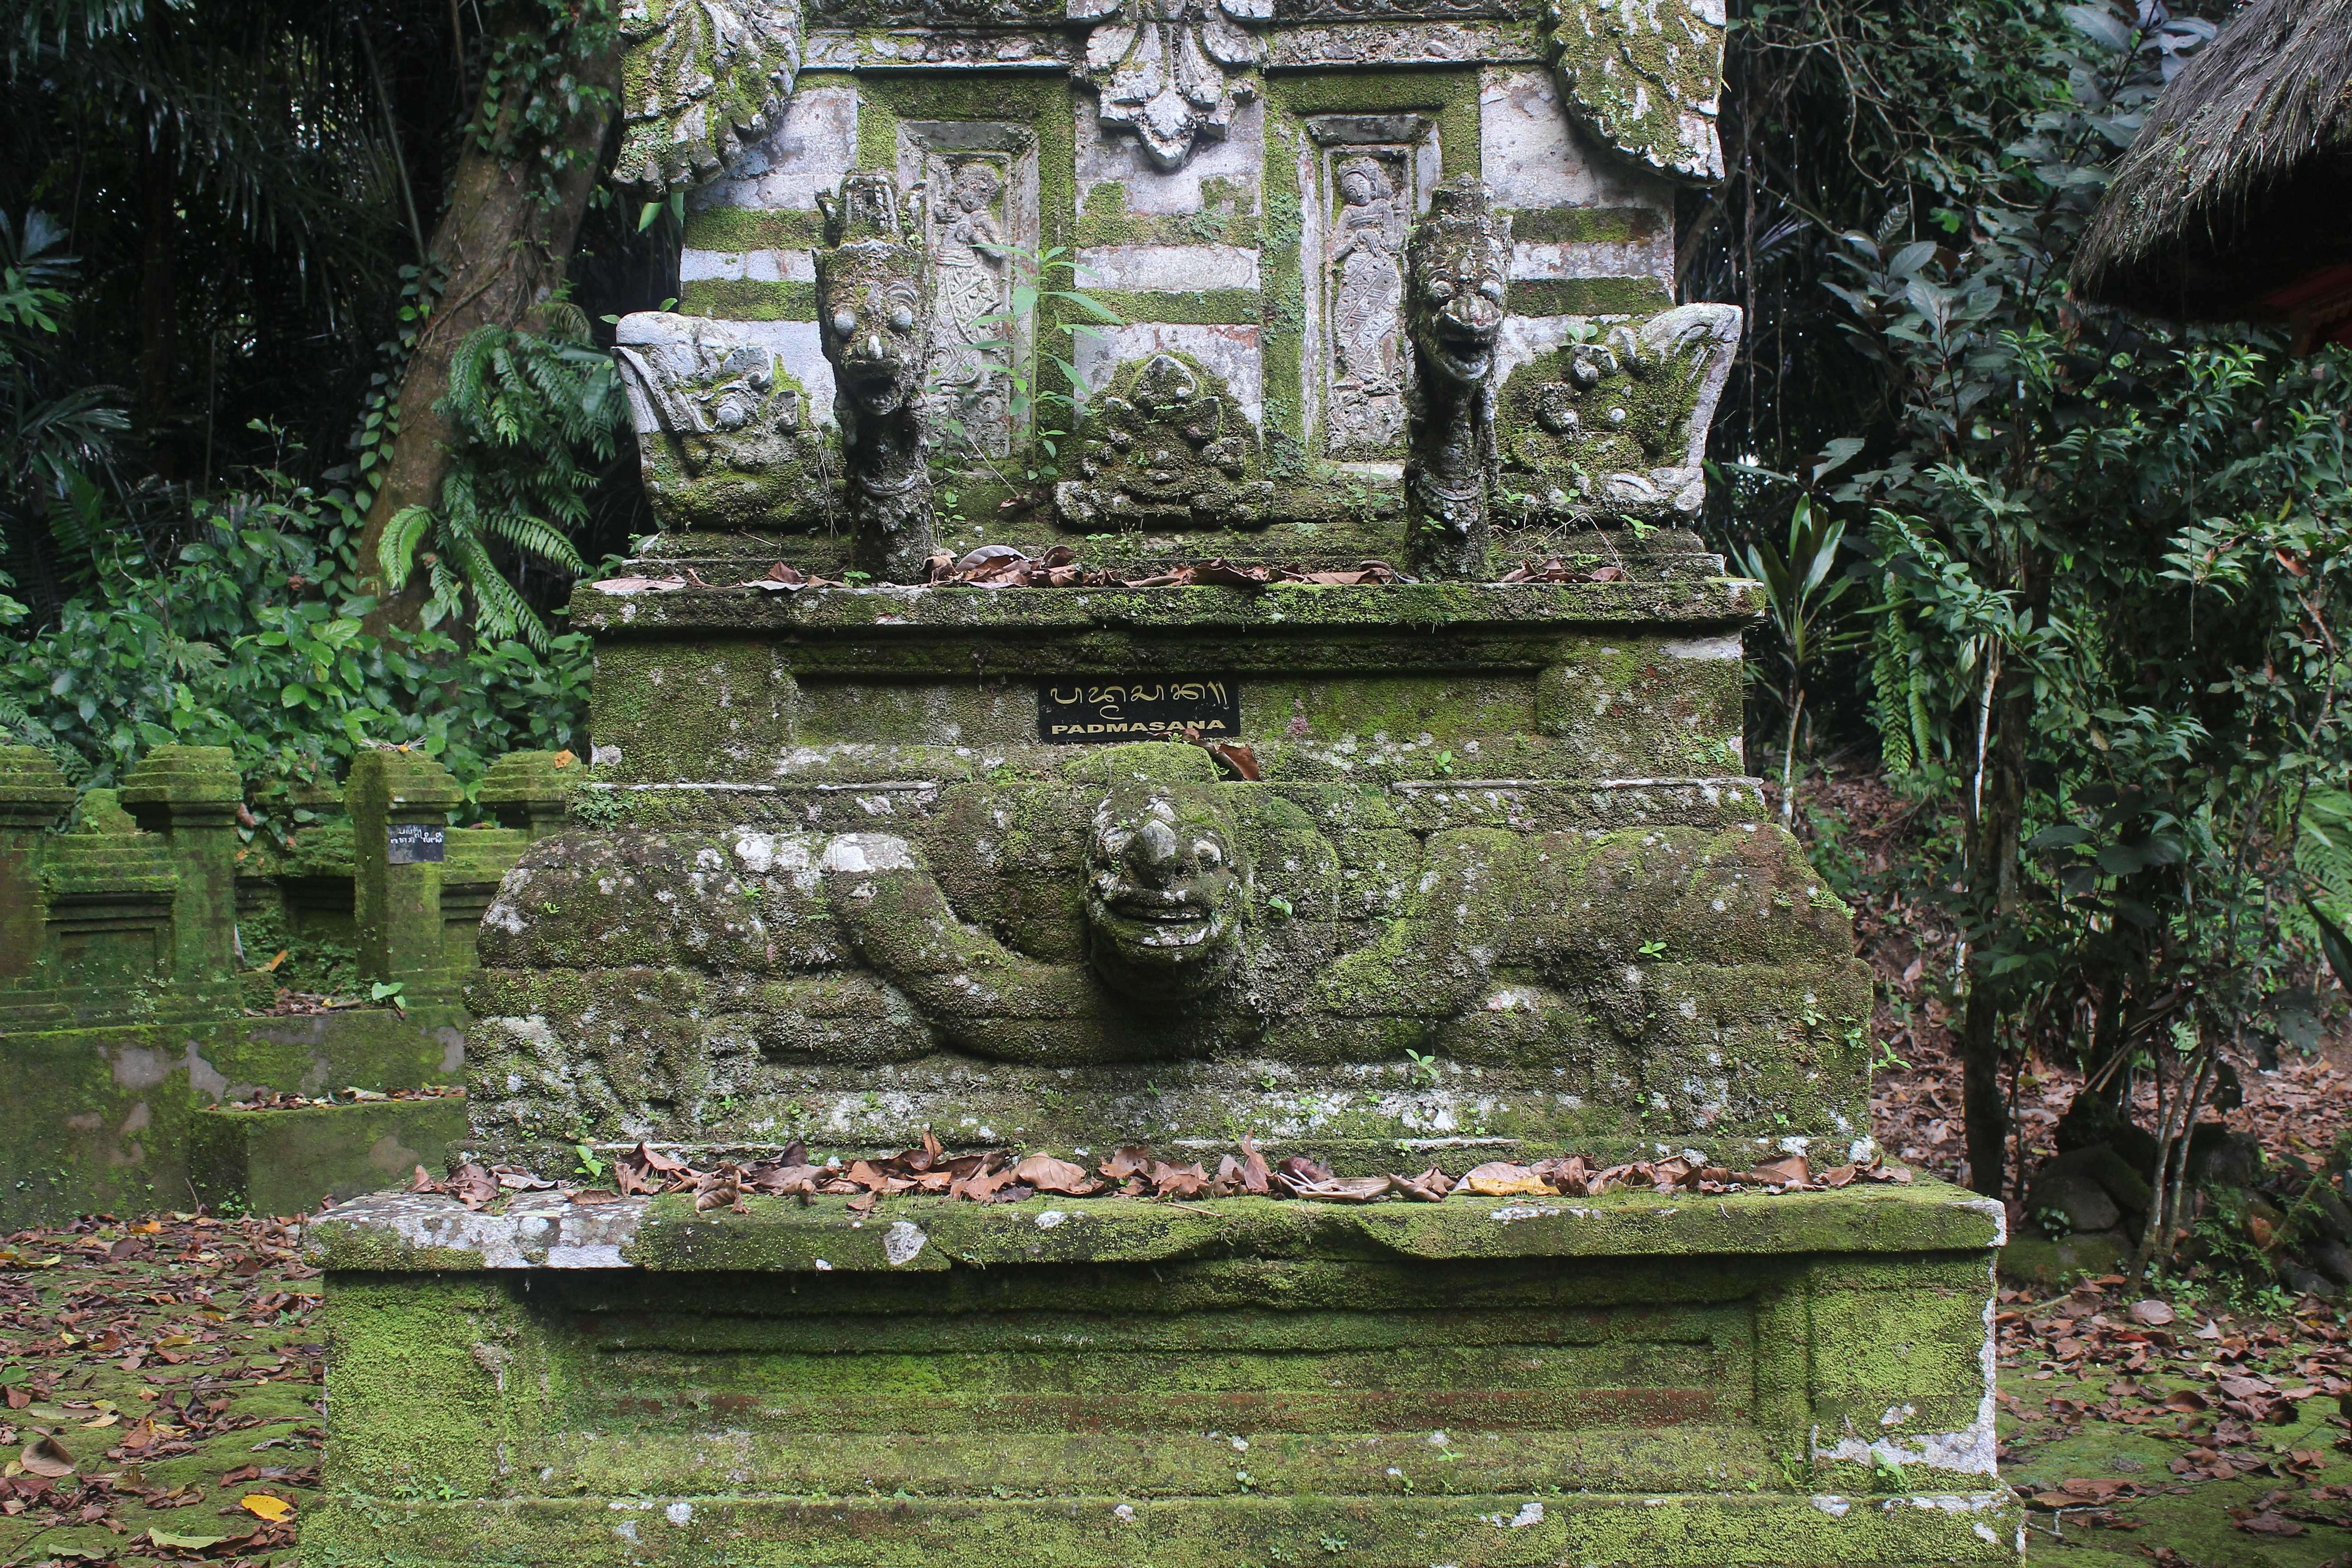 Overgrown shrine with serpent carvings